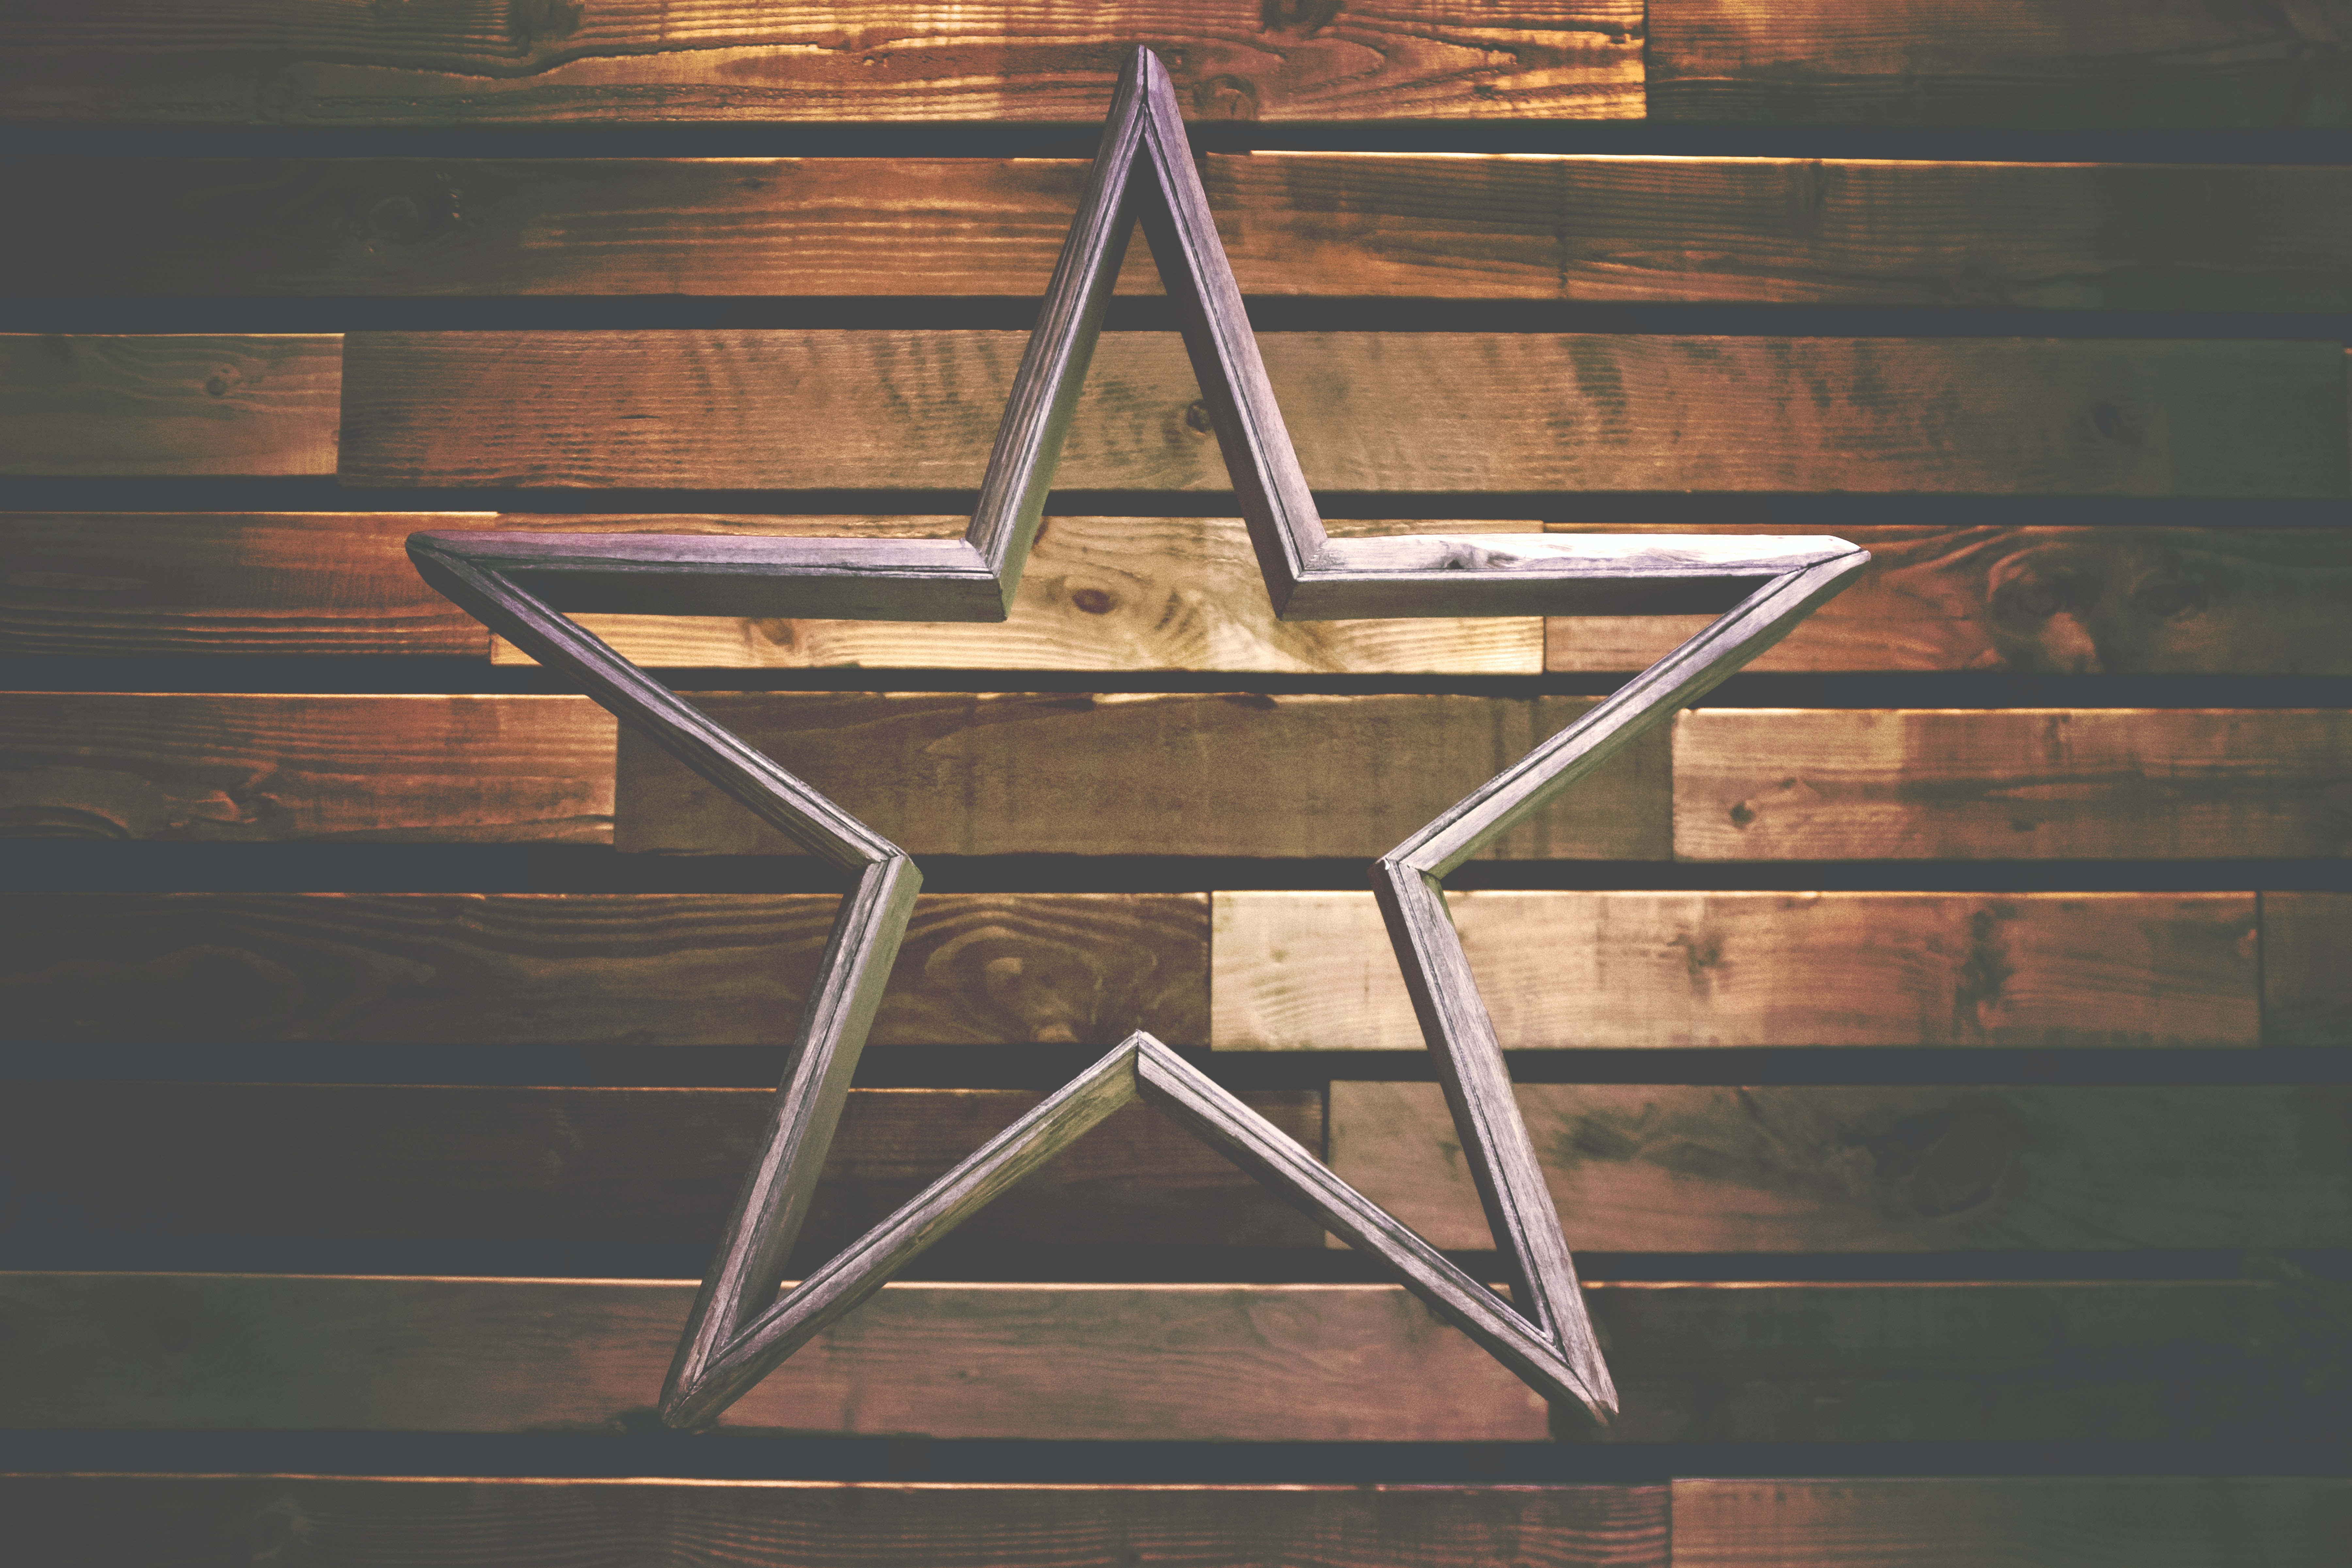 A wooden decoration in the shape of a hollow star against a wooden wall